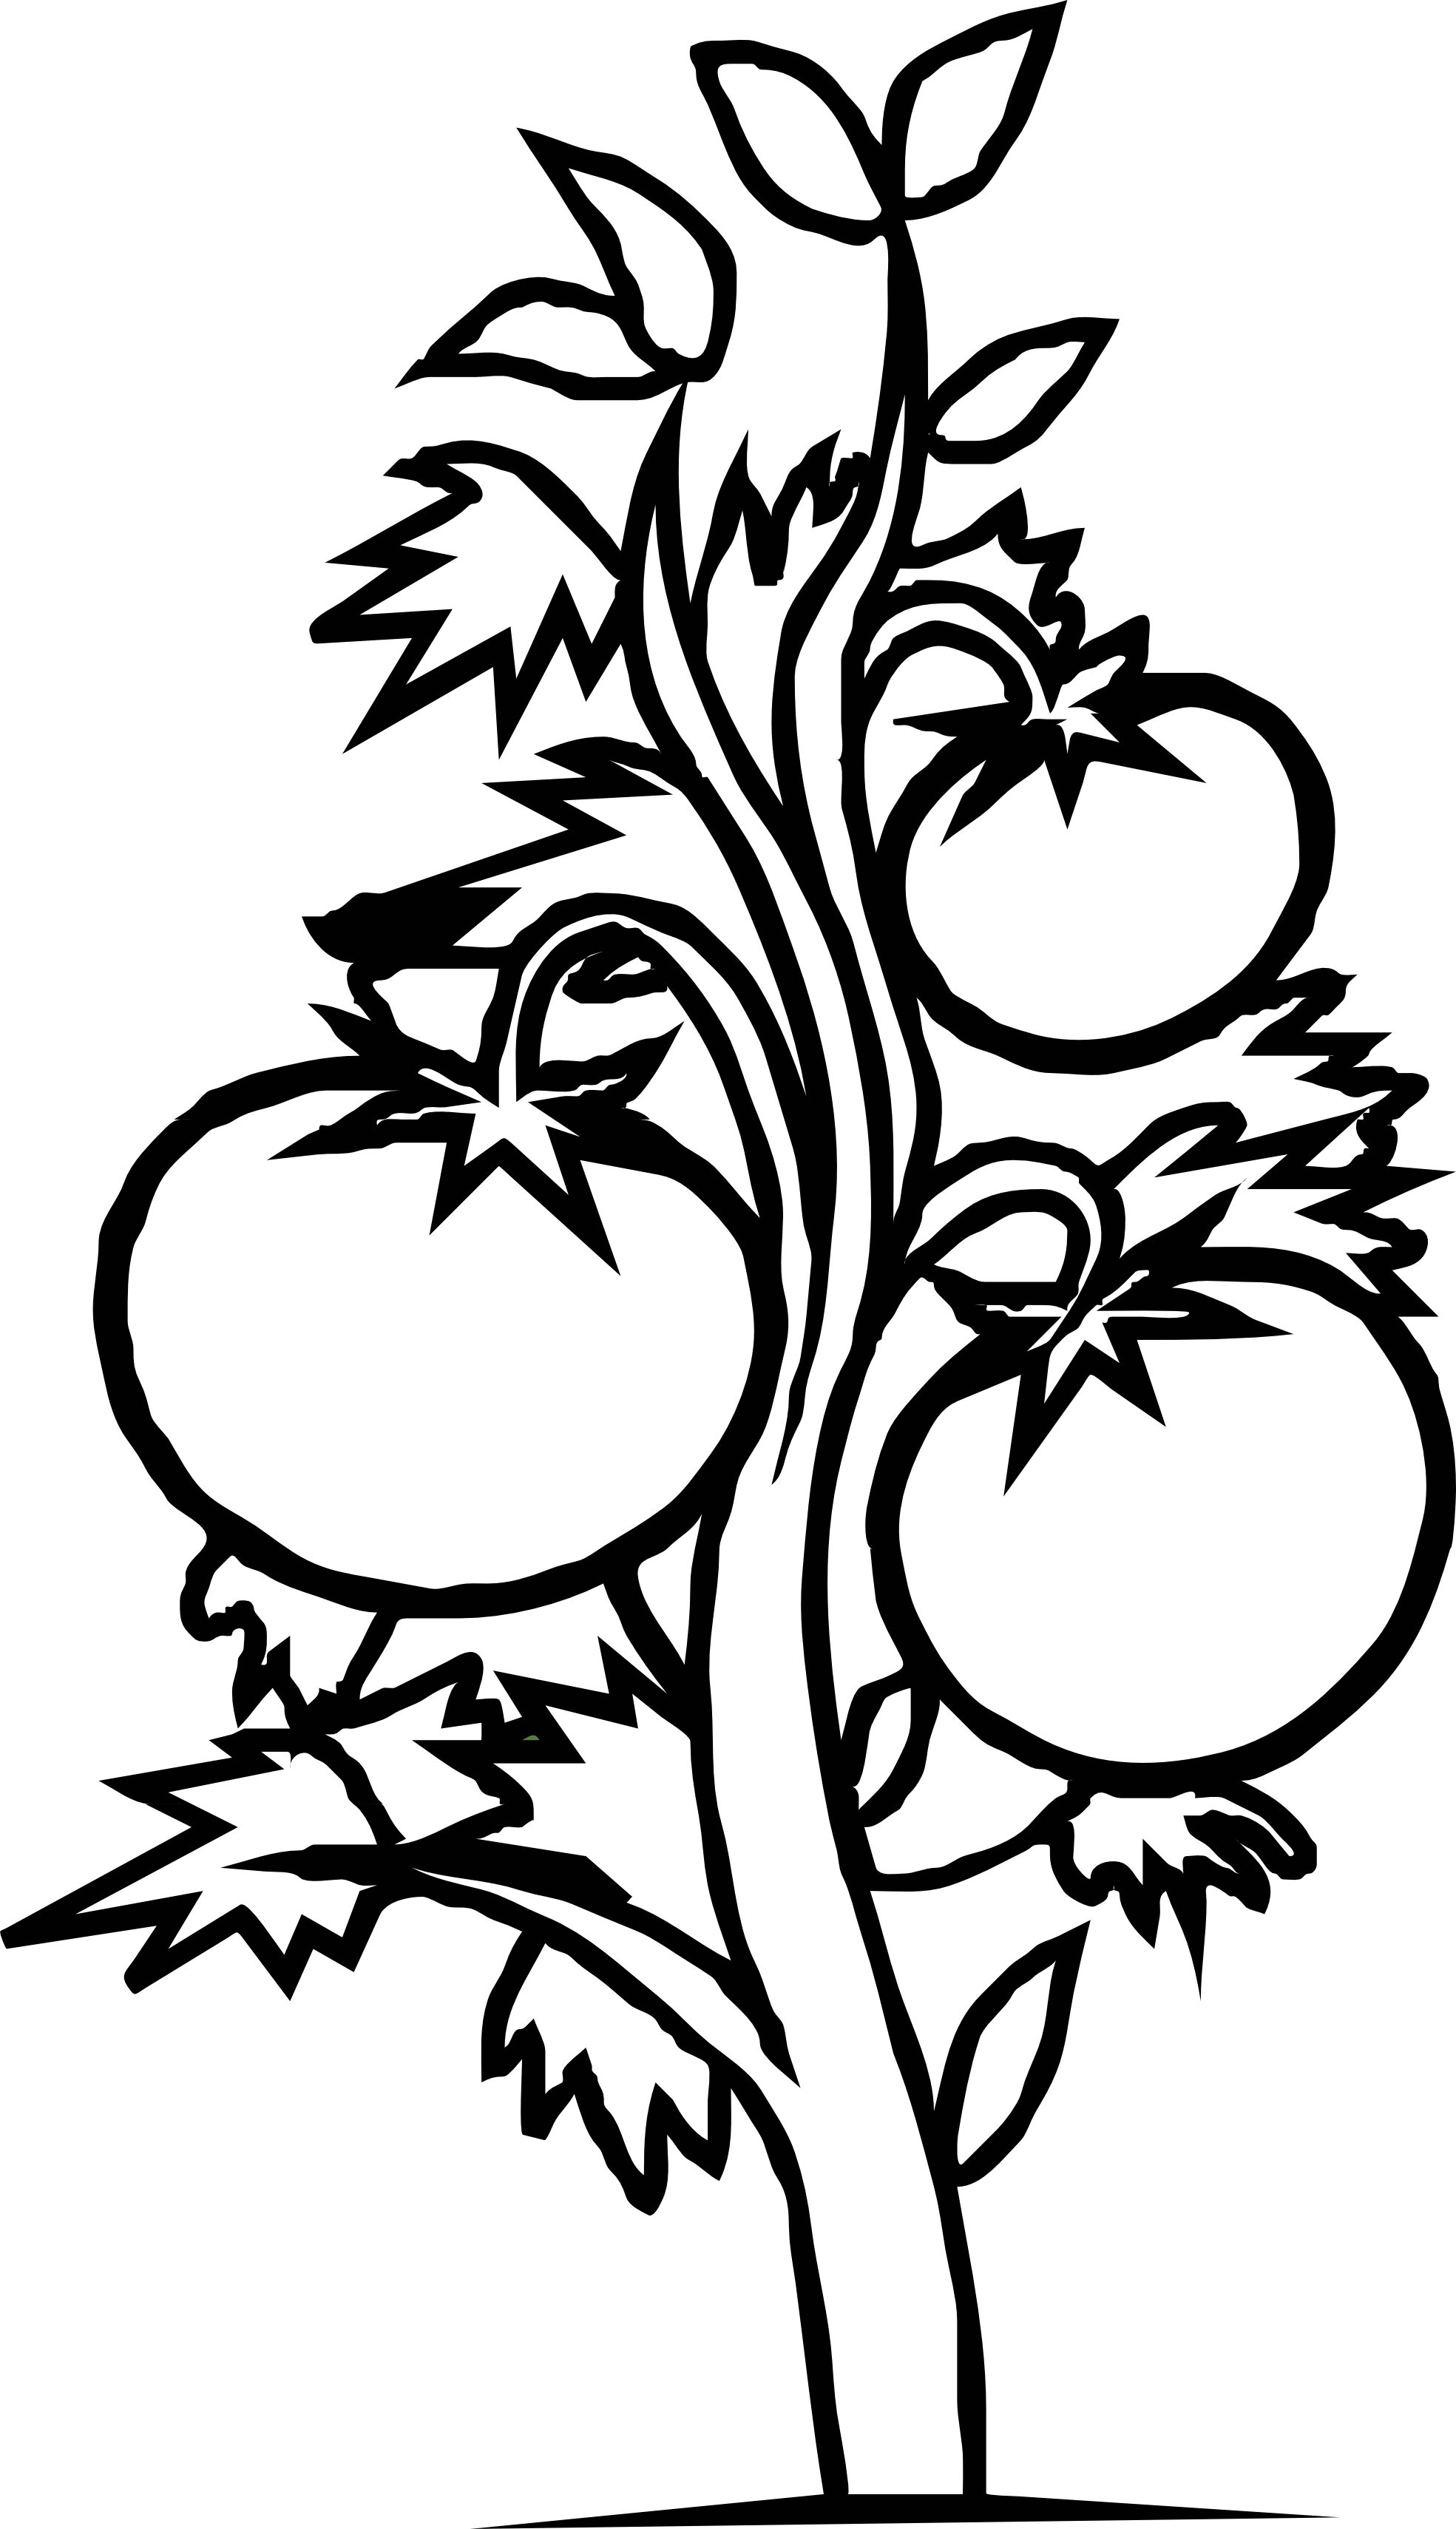 Line Art Vegetables : Vegetable plant clipart black and white panda